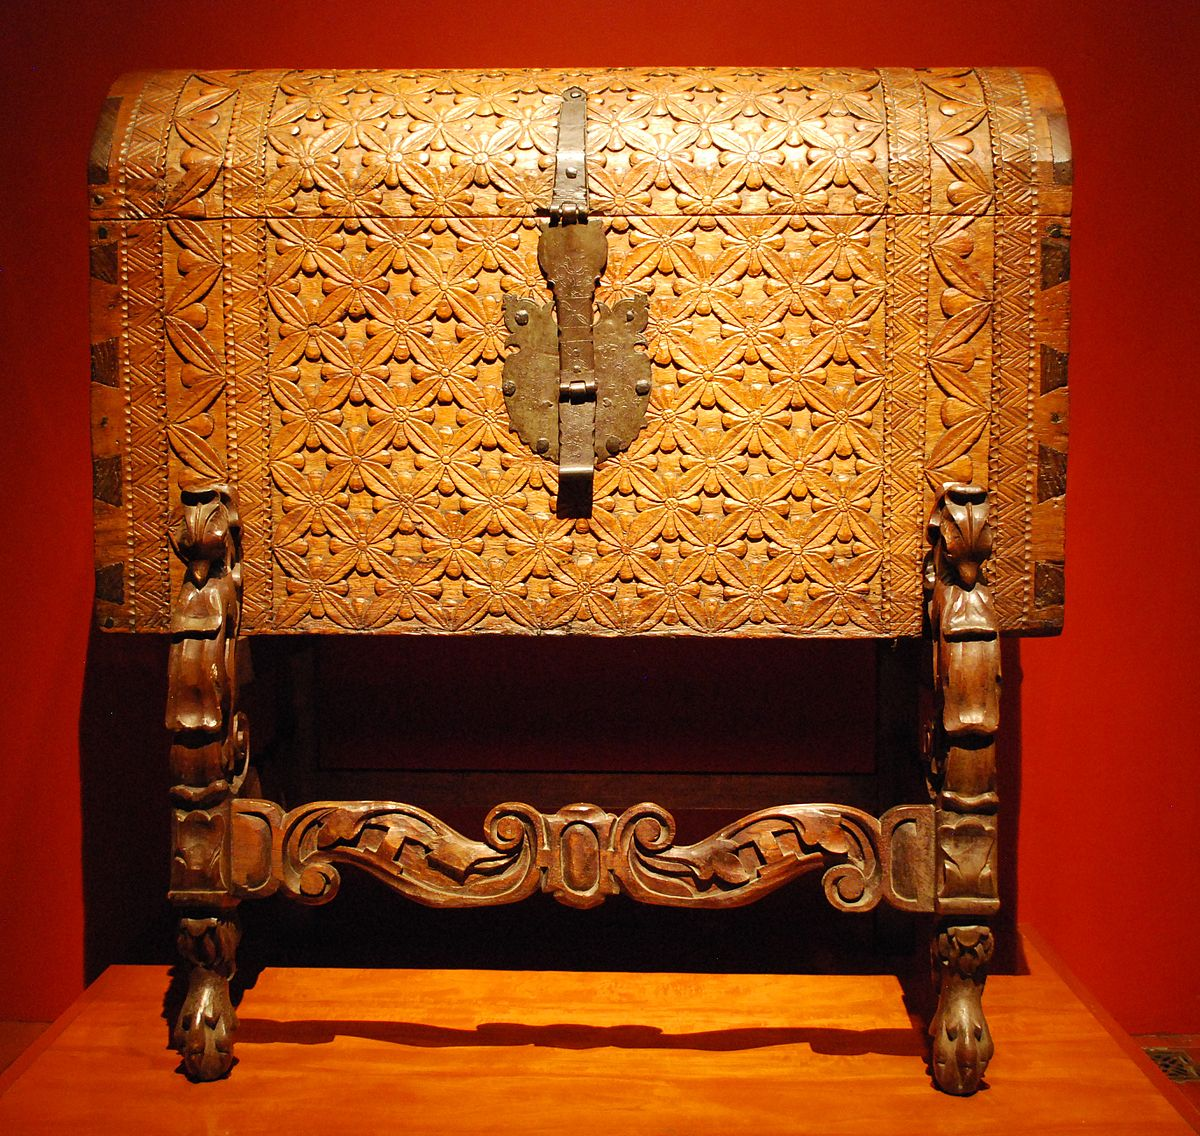 Chest (furniture)